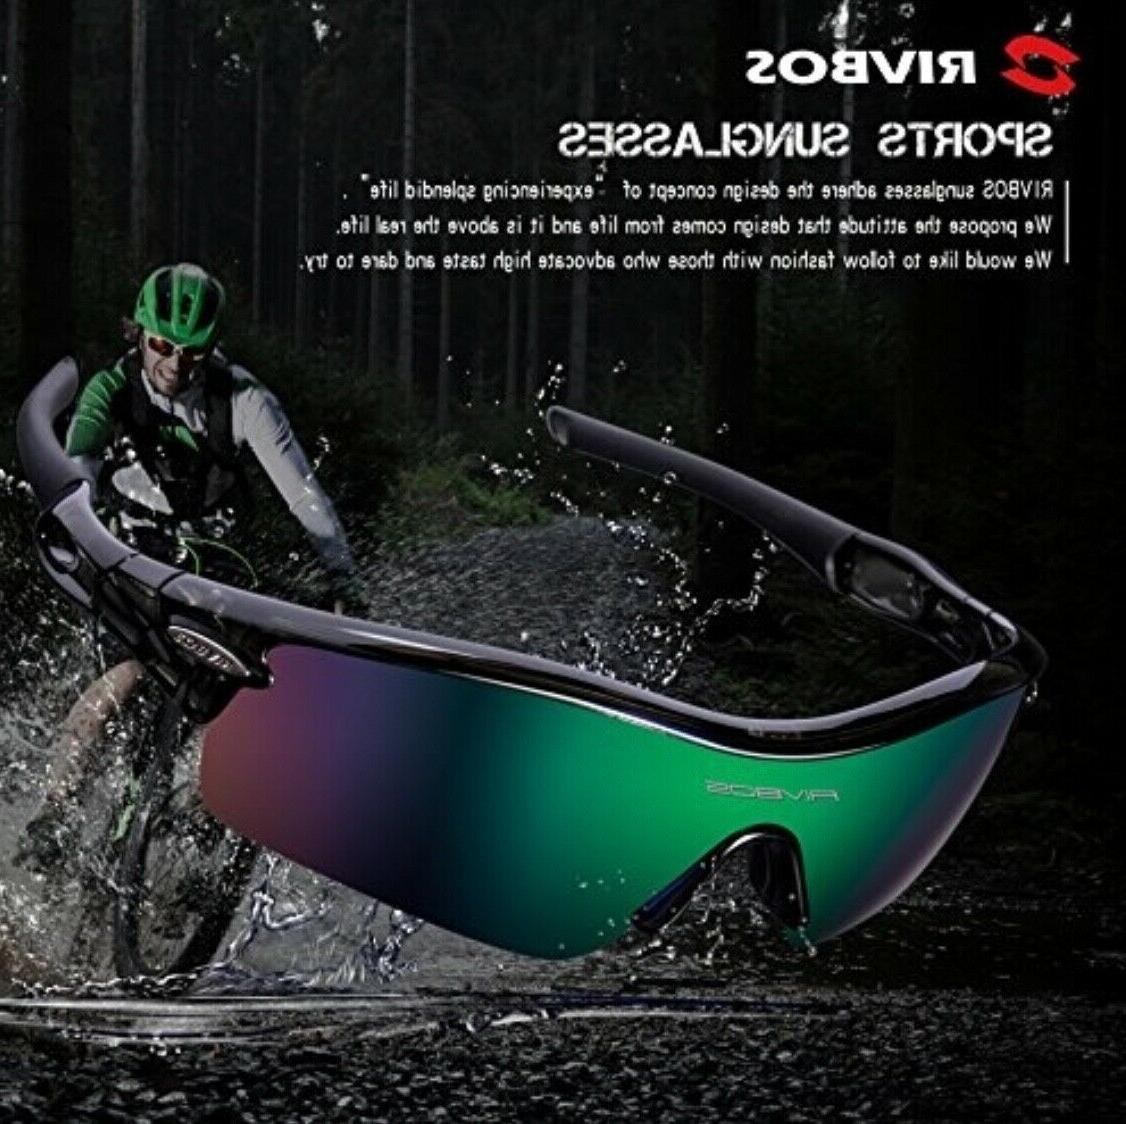 RIVBOS 805 POLARIZED Sunglasses with Interchangeable Lenses